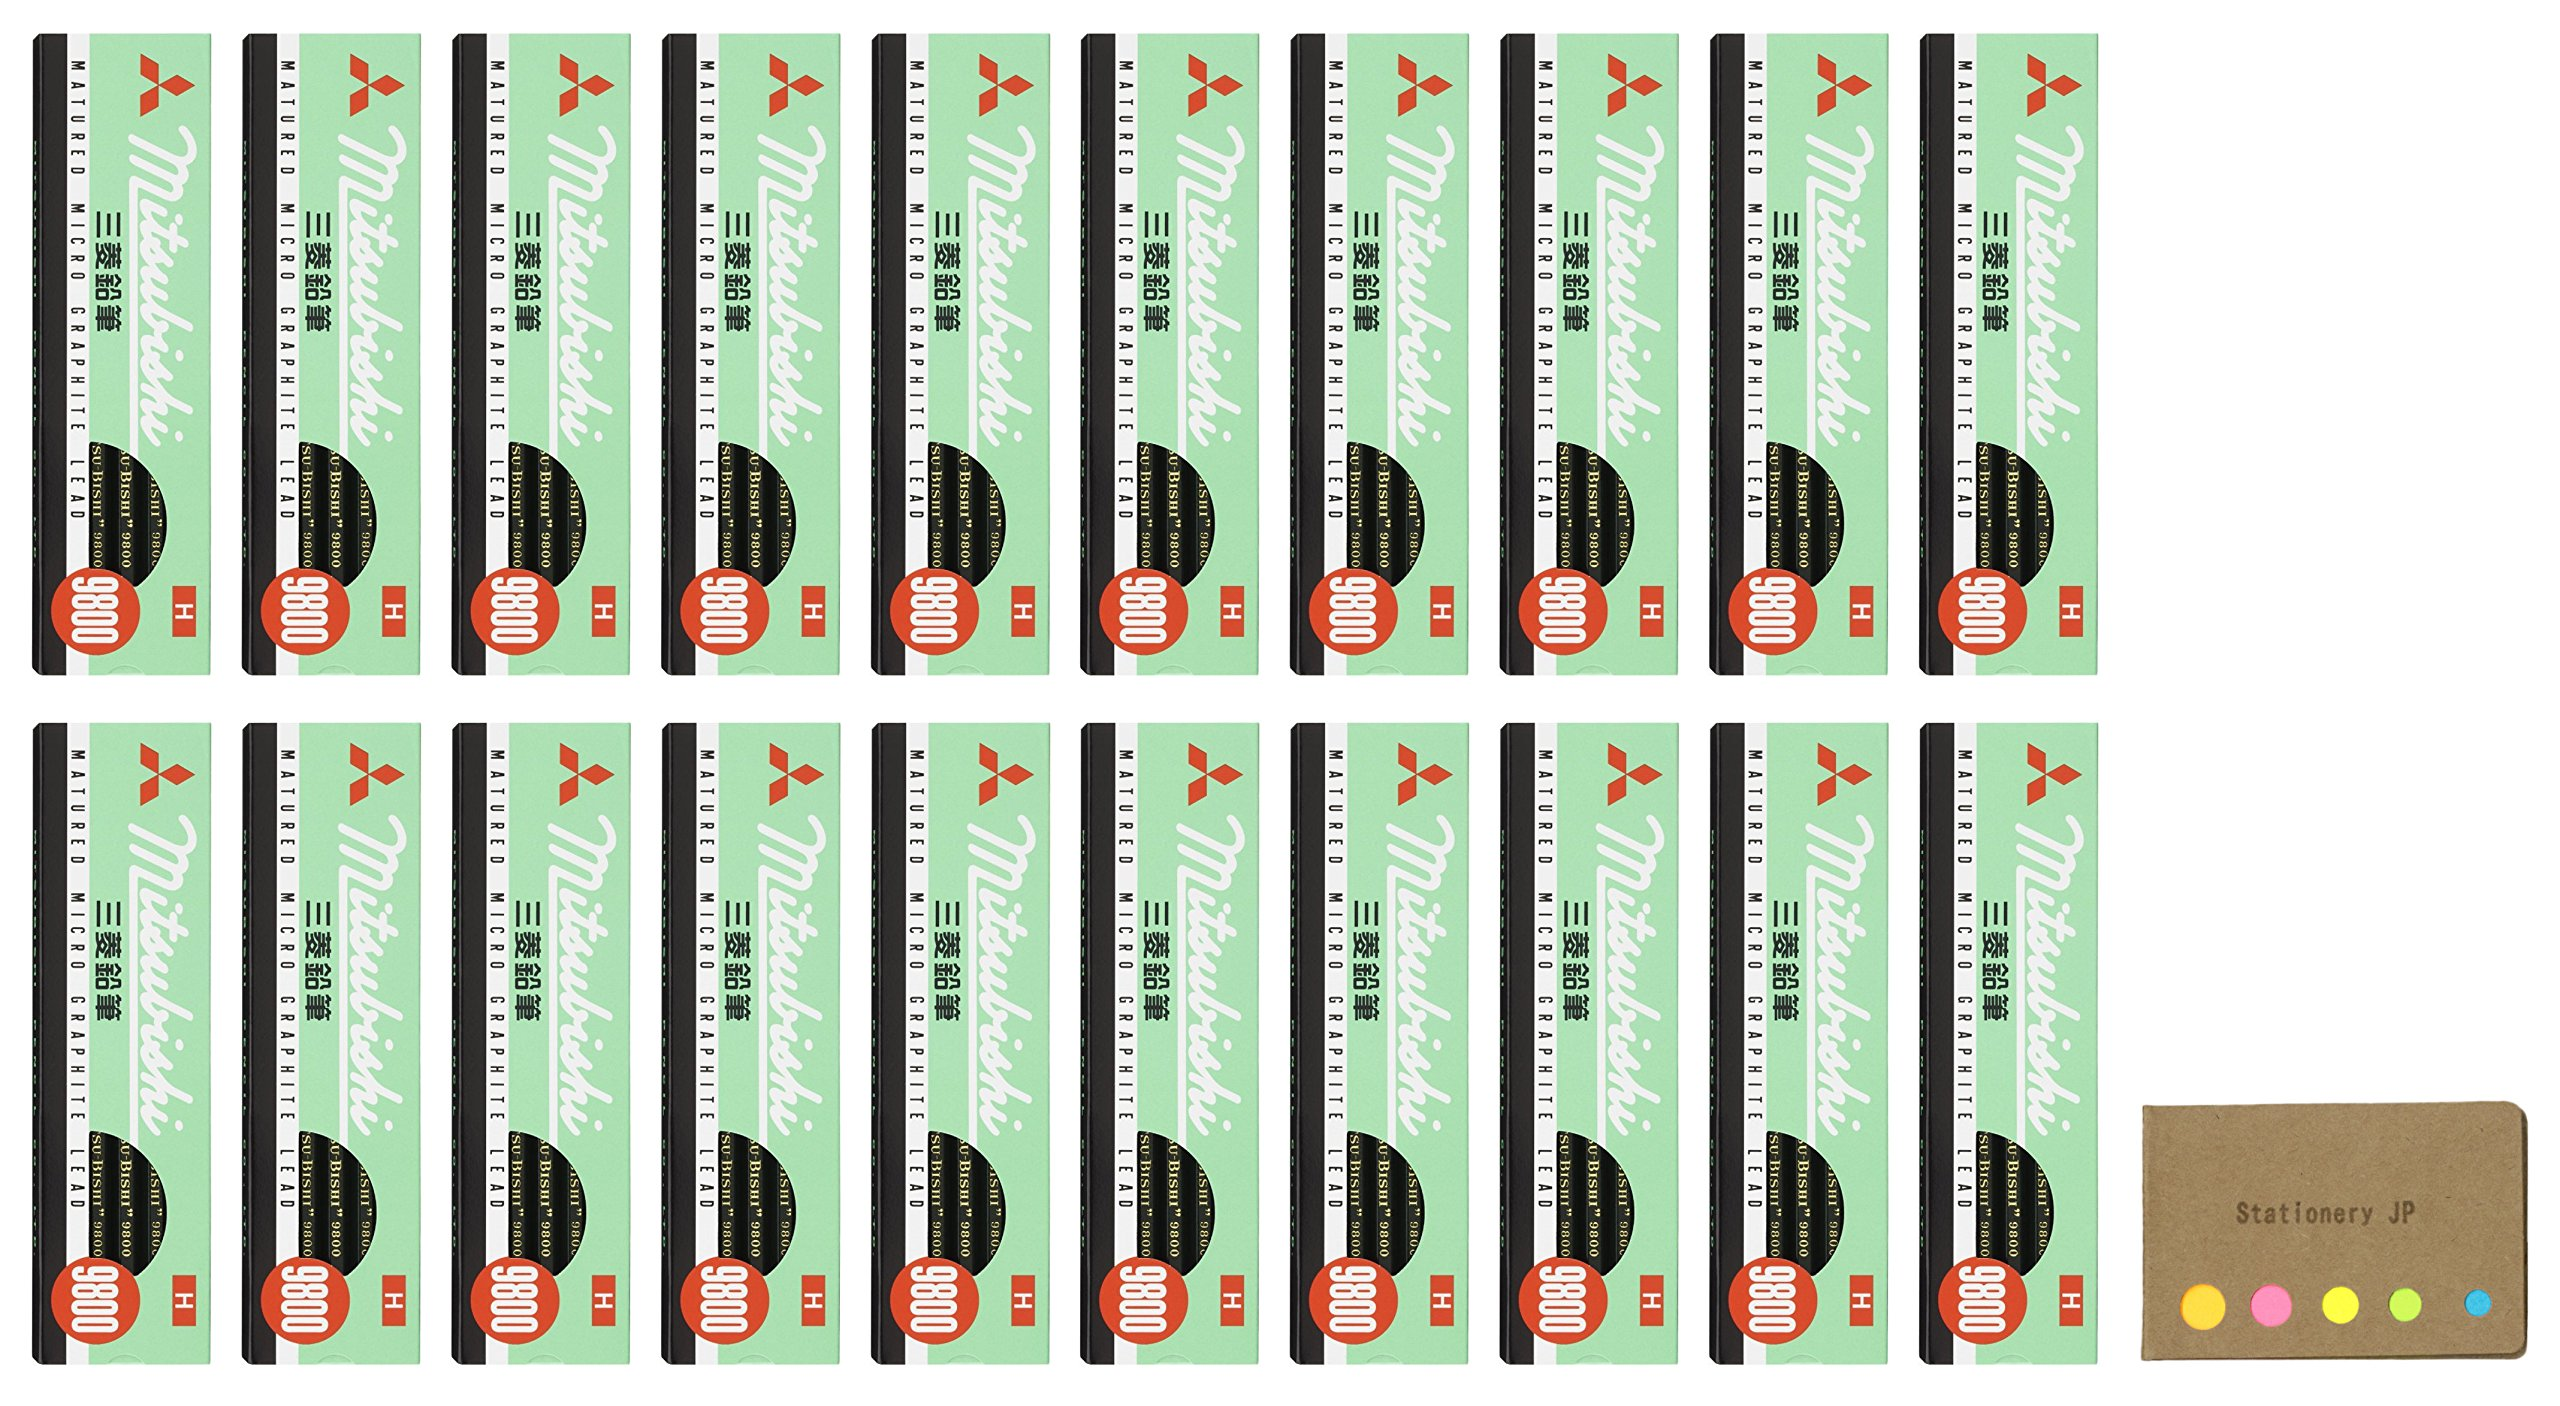 Uni Mitsubishi 9800 Pencil, H, 20-pack/total 240 pcs, Sticky Notes Value Set by Stationery JP (Image #1)